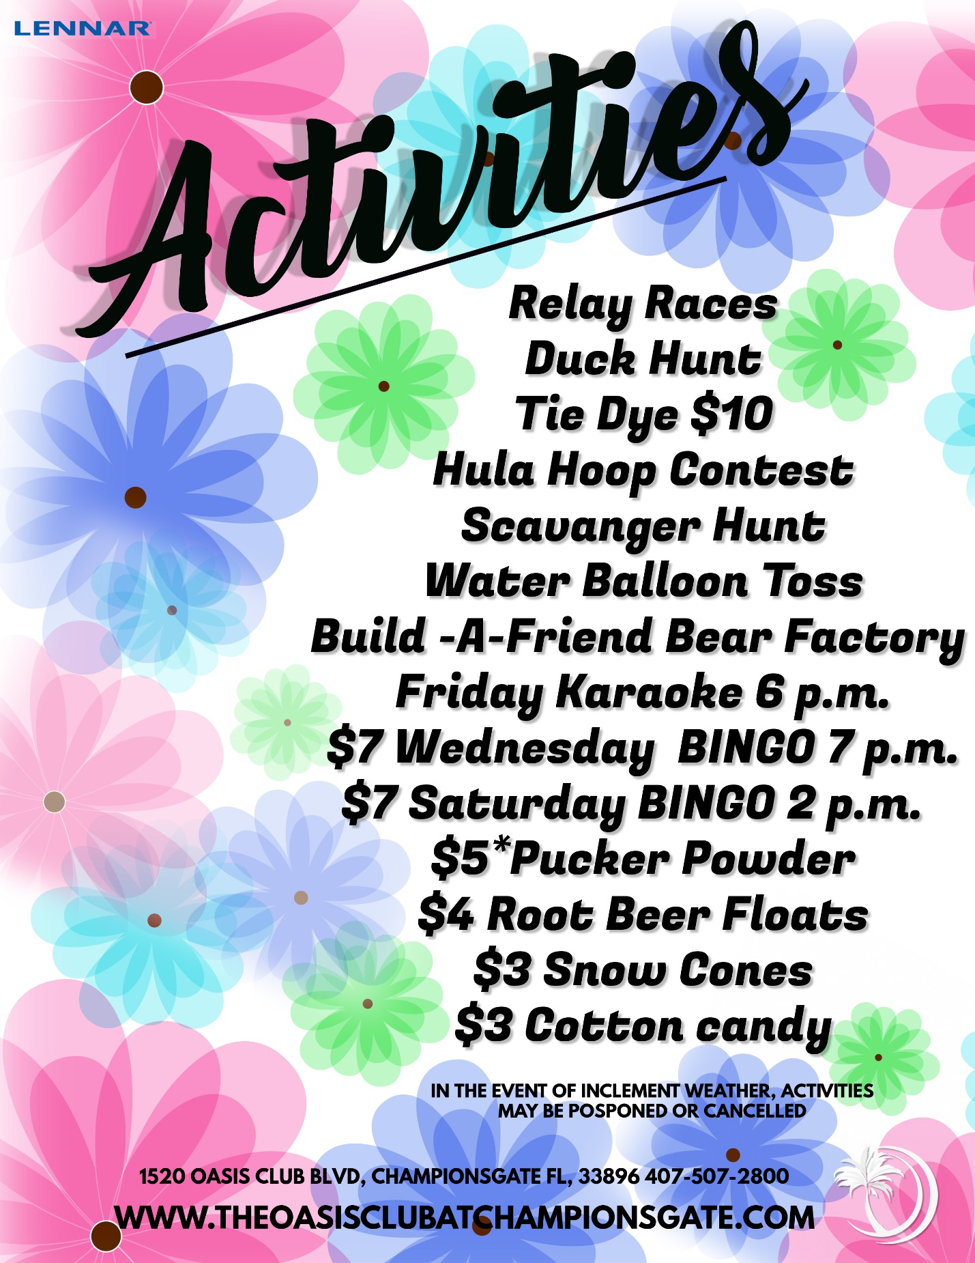 Activities Relay Races, Duck Hunt, Tie Dye $10, Hula Hoop Contest, Scavenger Hunt, Water Balloon Toss, Build-A-Friend Bear Factory, Friday Karaoke 6PM, $7 Wednesday BINGO 7PM, $7 Saturday BINGO 2PM, $5 Pucker Powder, $4 Root Beer Floats, $3 Snow Cones In the event of inclement weather, activities may be postponed or cancelled. 1520 Oasis Club Blvd, Championsgate FL, 33896, 407-507-2800